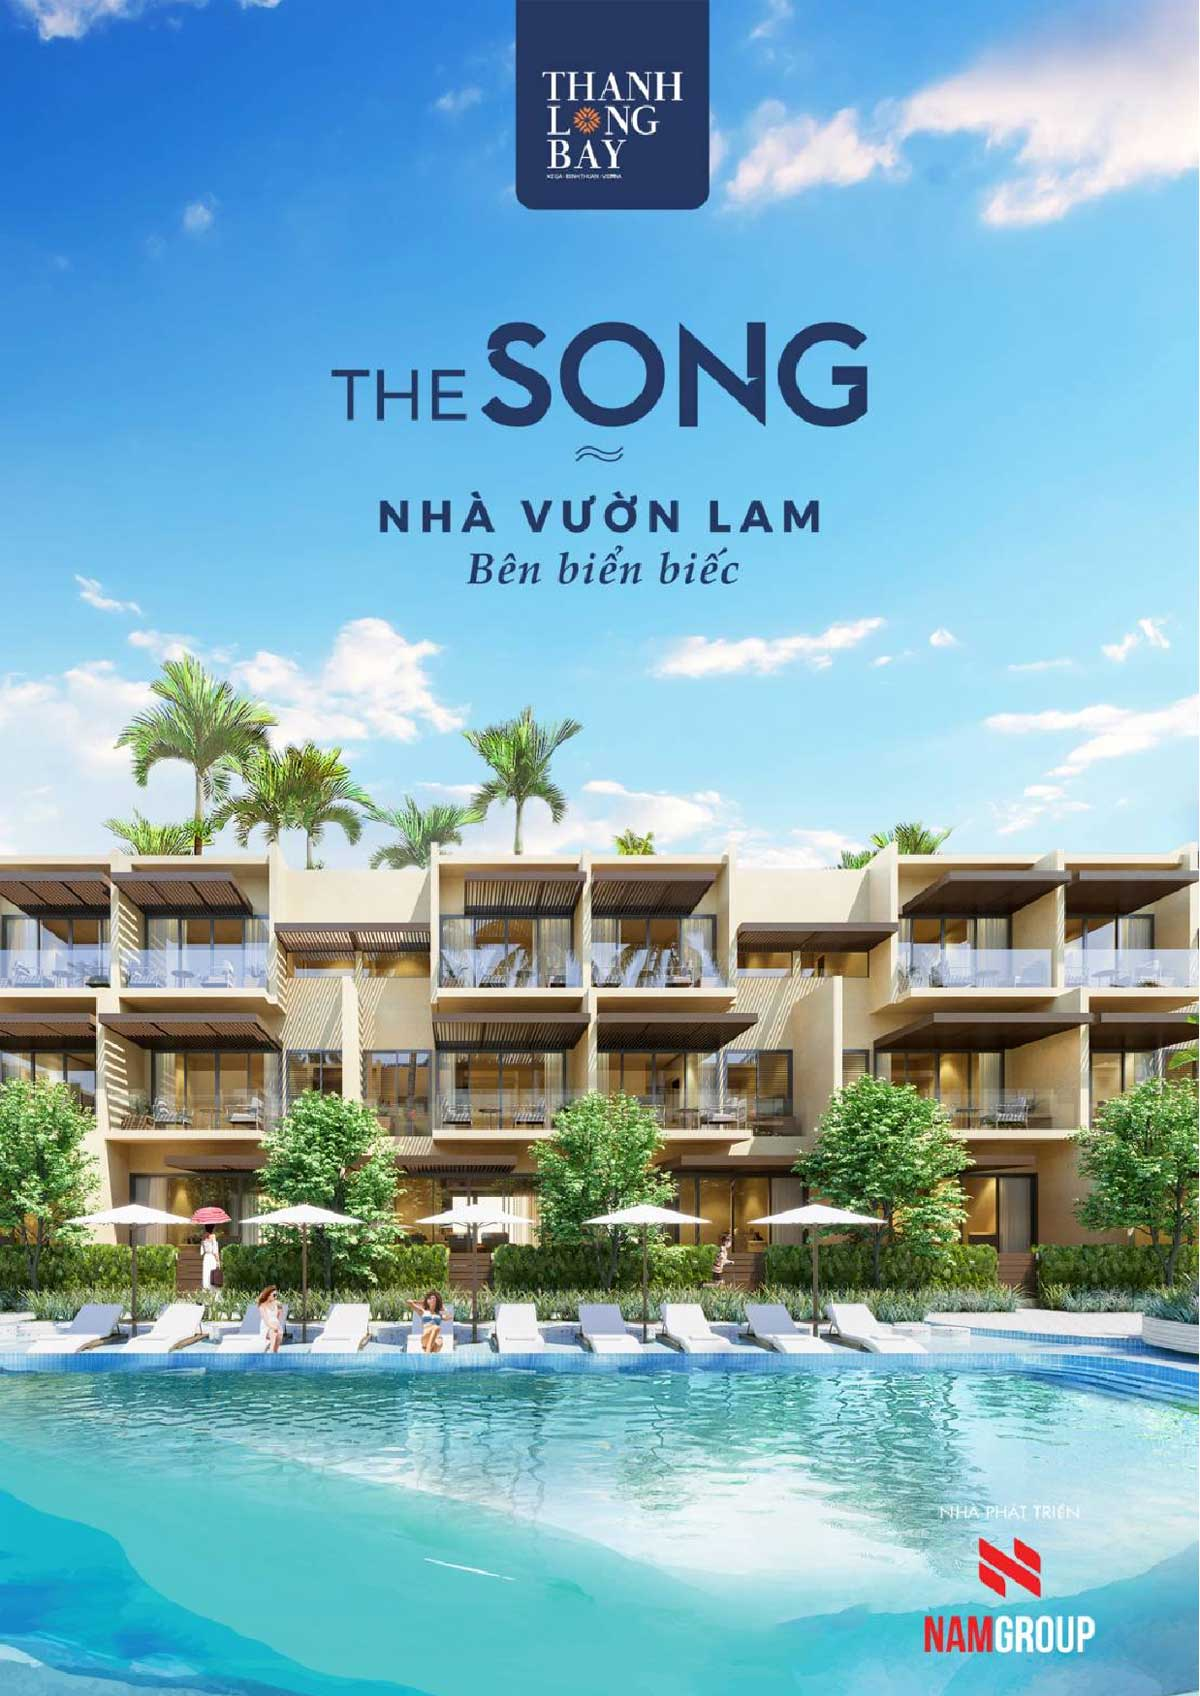 nha pho 2 mat tien bien the song bay thanh long bay - The Song By Thanh Long Bay